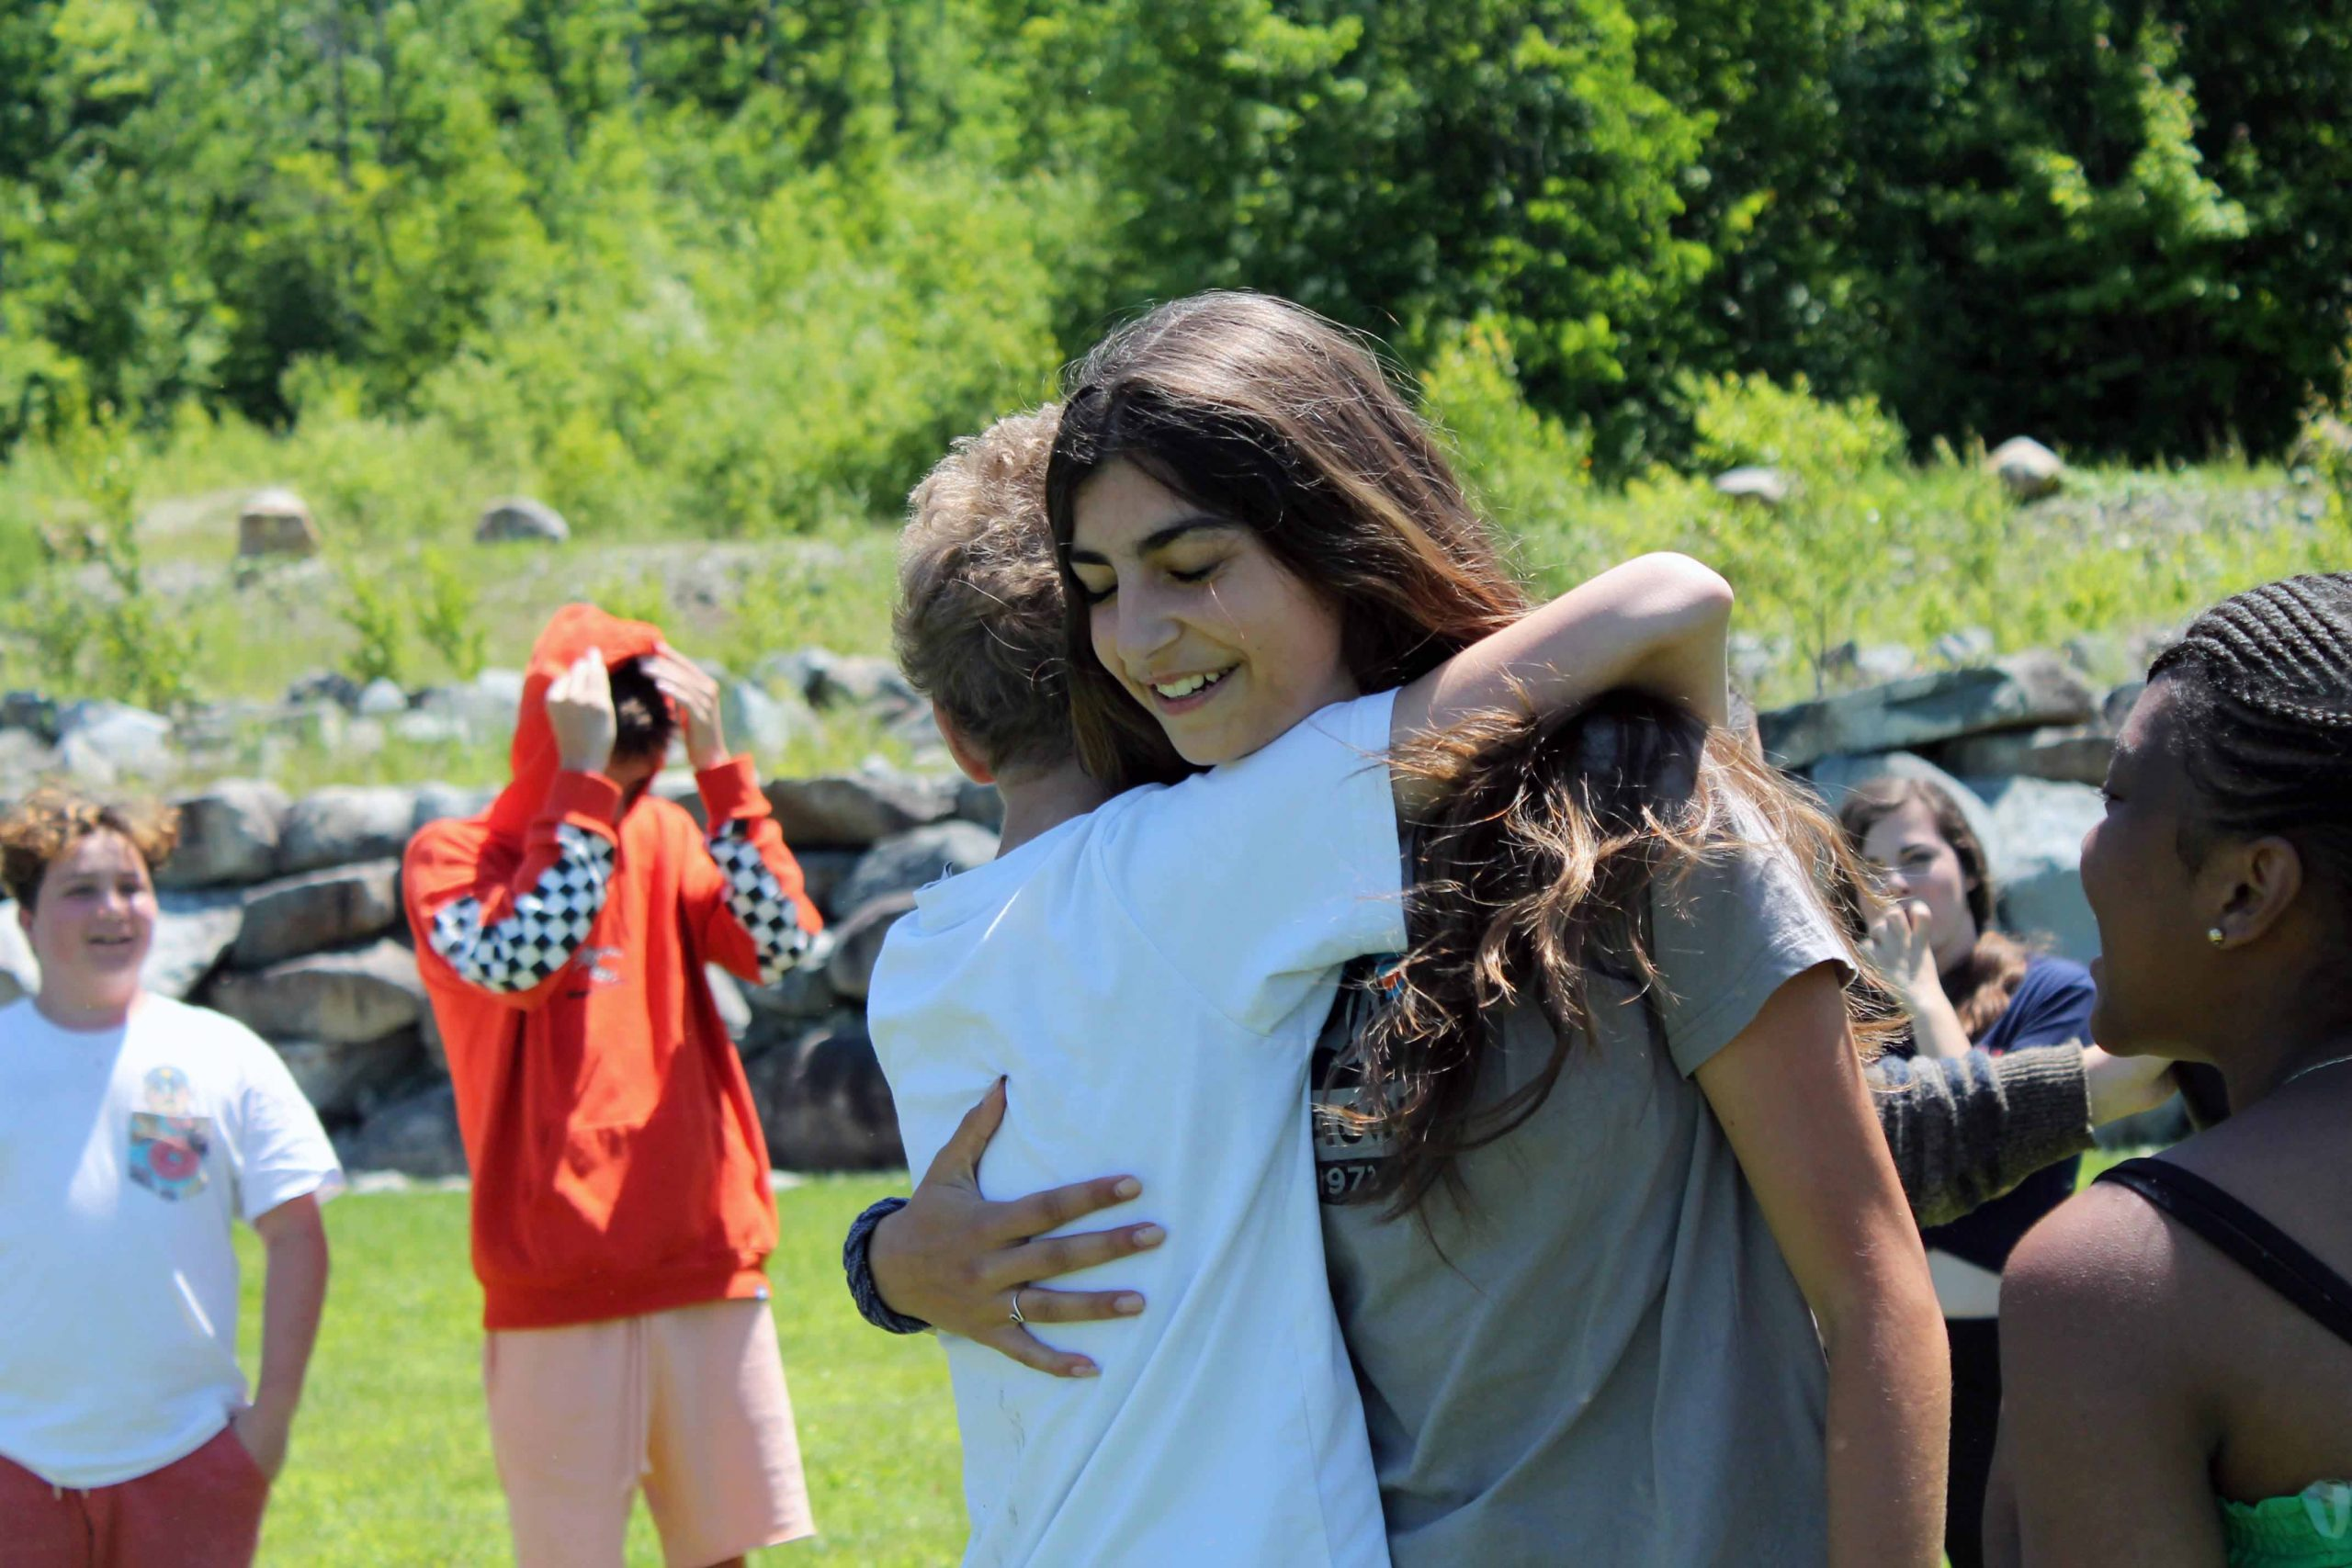 Campers hug after a competition